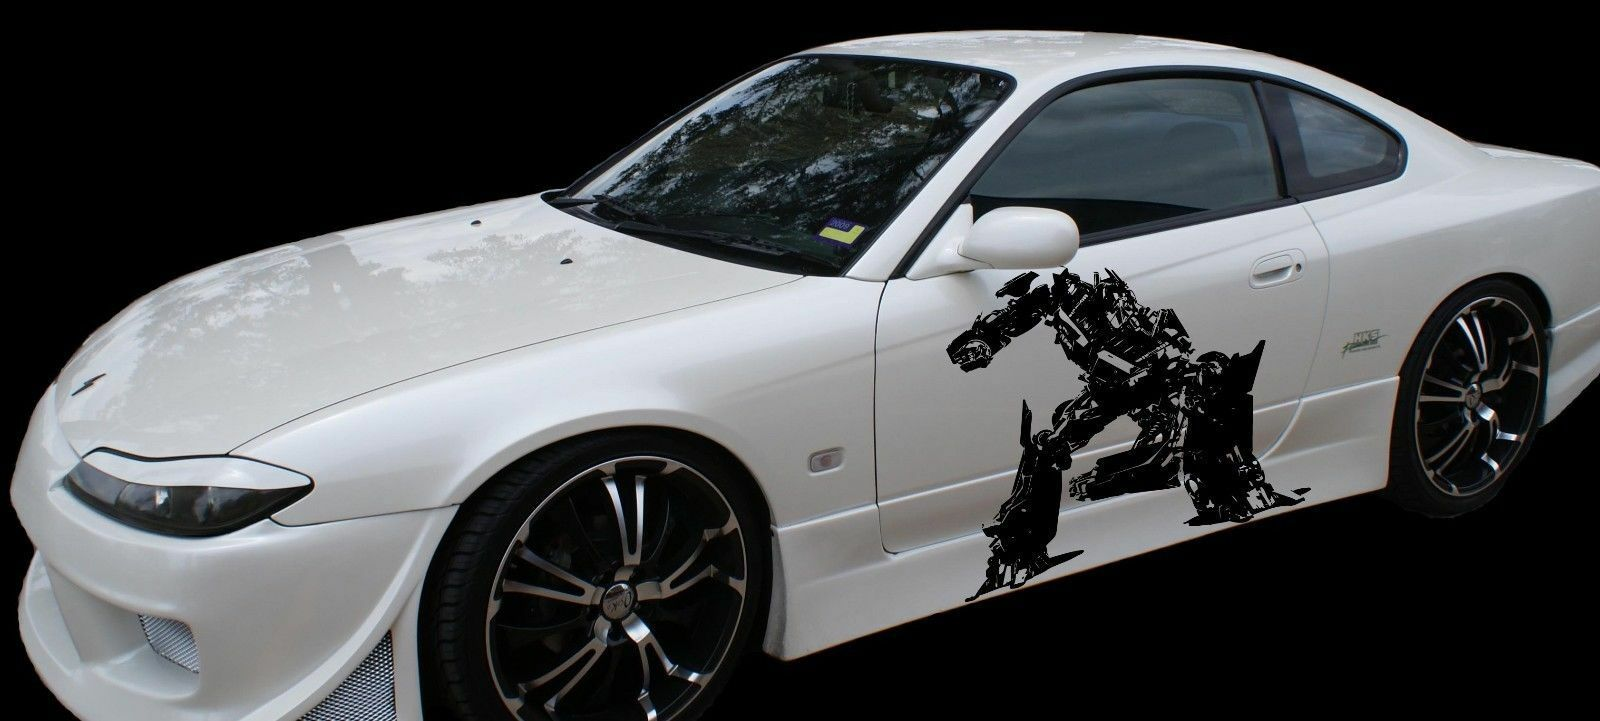 Top Car Stickers EBay - Sporting car decals